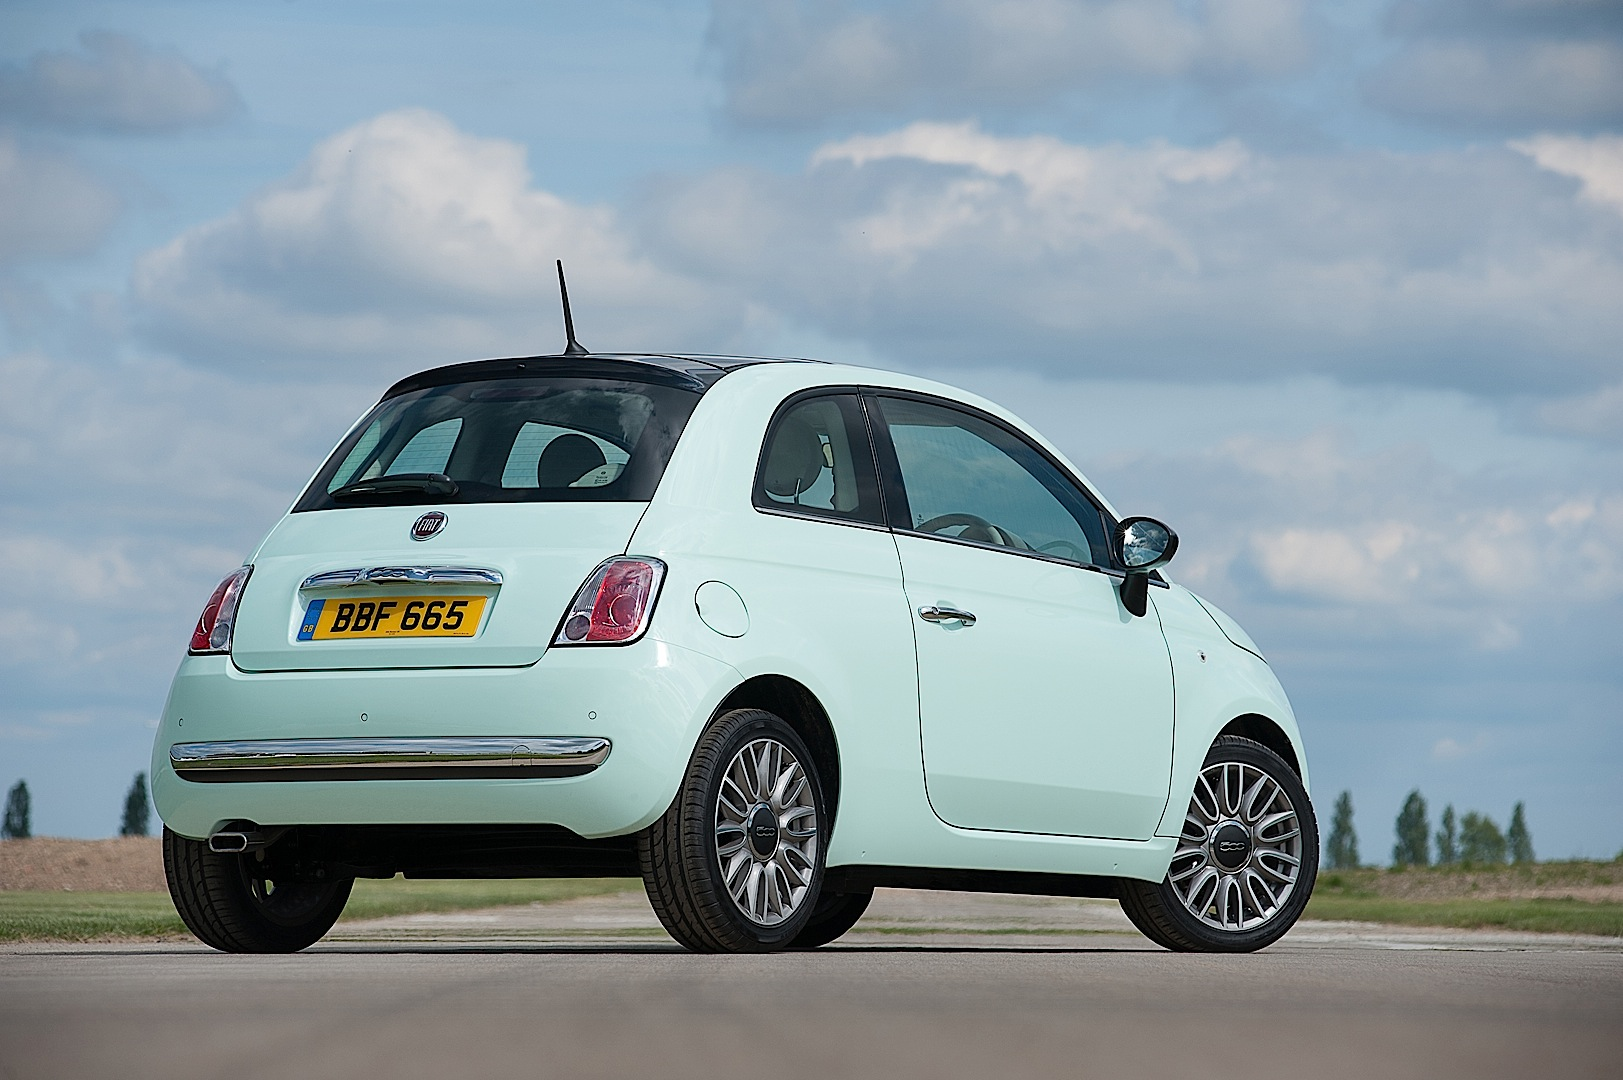 2014 Fiat 500 Uk Pricing Announced Autoevolution